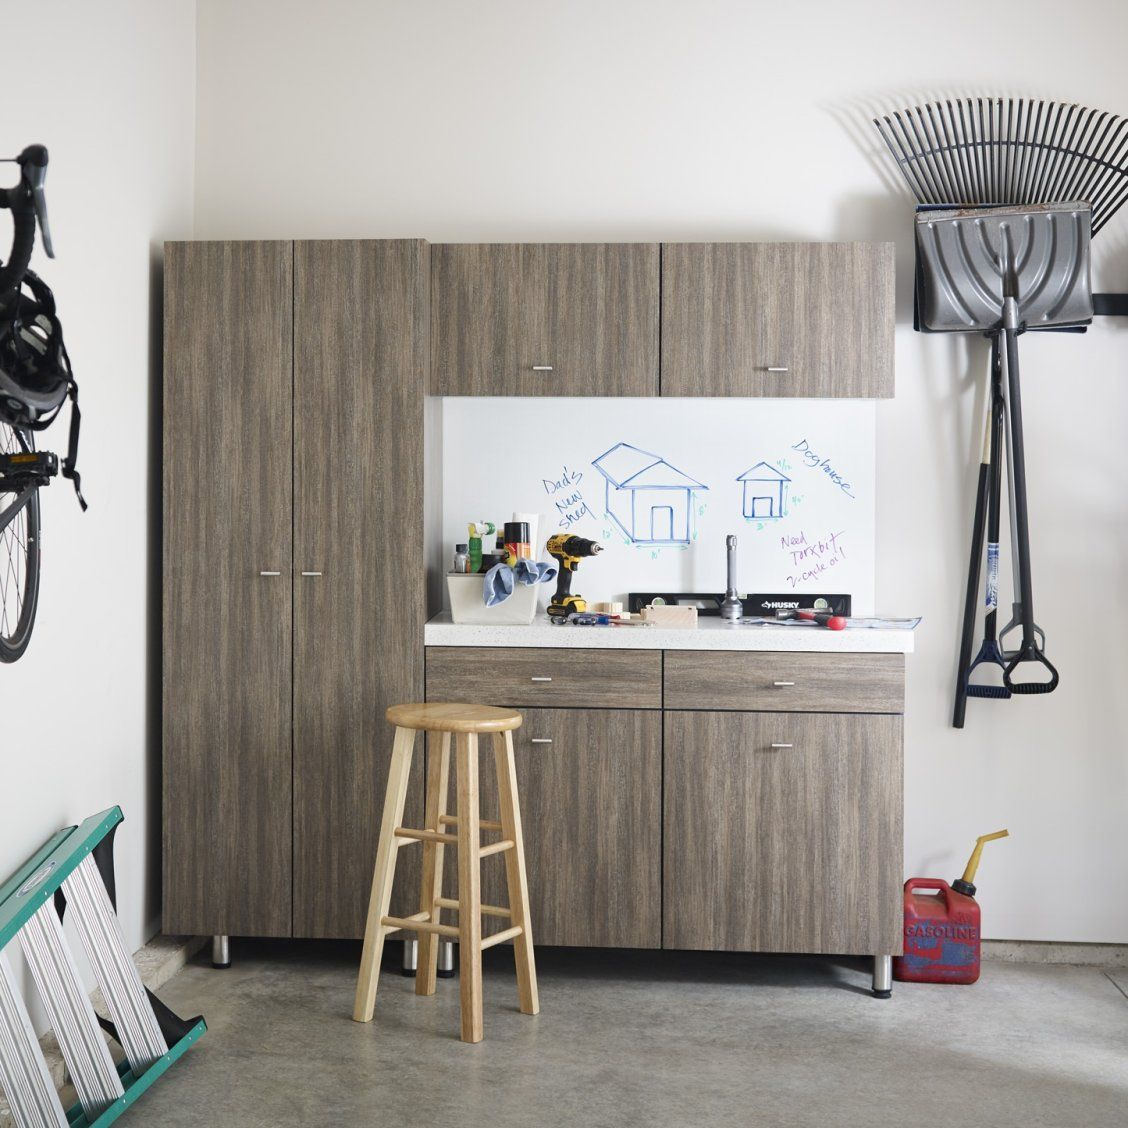 Use Formica® Laminate To Create A Custom Workbench In Your Garage Pictured:  Cabinets   Formica® Laminate 8915 Walnut Fiberwood Backsplash   Formica® ...